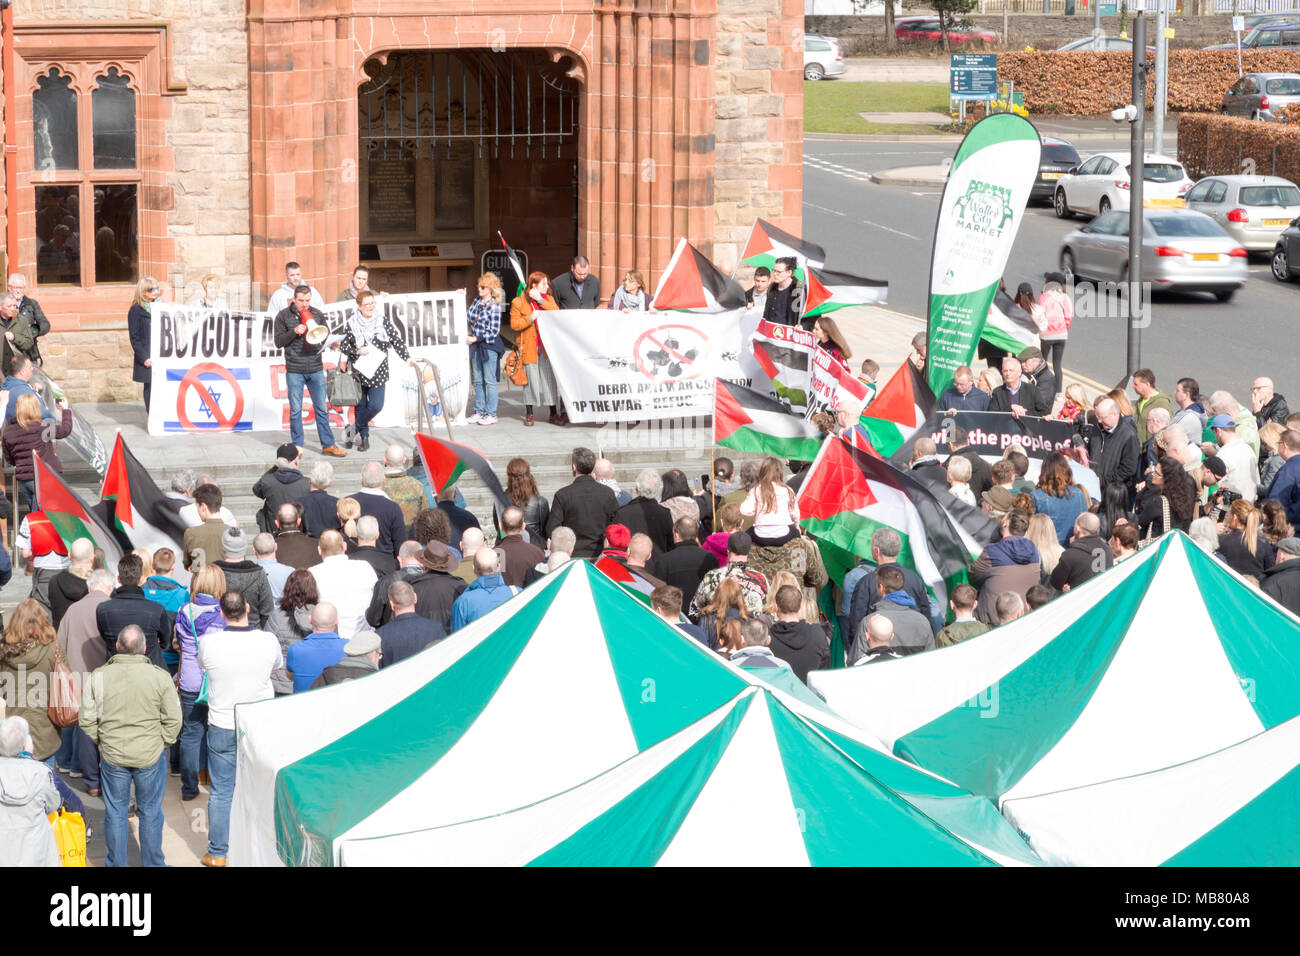 IRELAND PALESTINE SOLIDARITY CAMPAIGN Rally in  Derry/Londonderry  - Solidarity with Murdered Land Day Protesters in Gaza - Stock Image